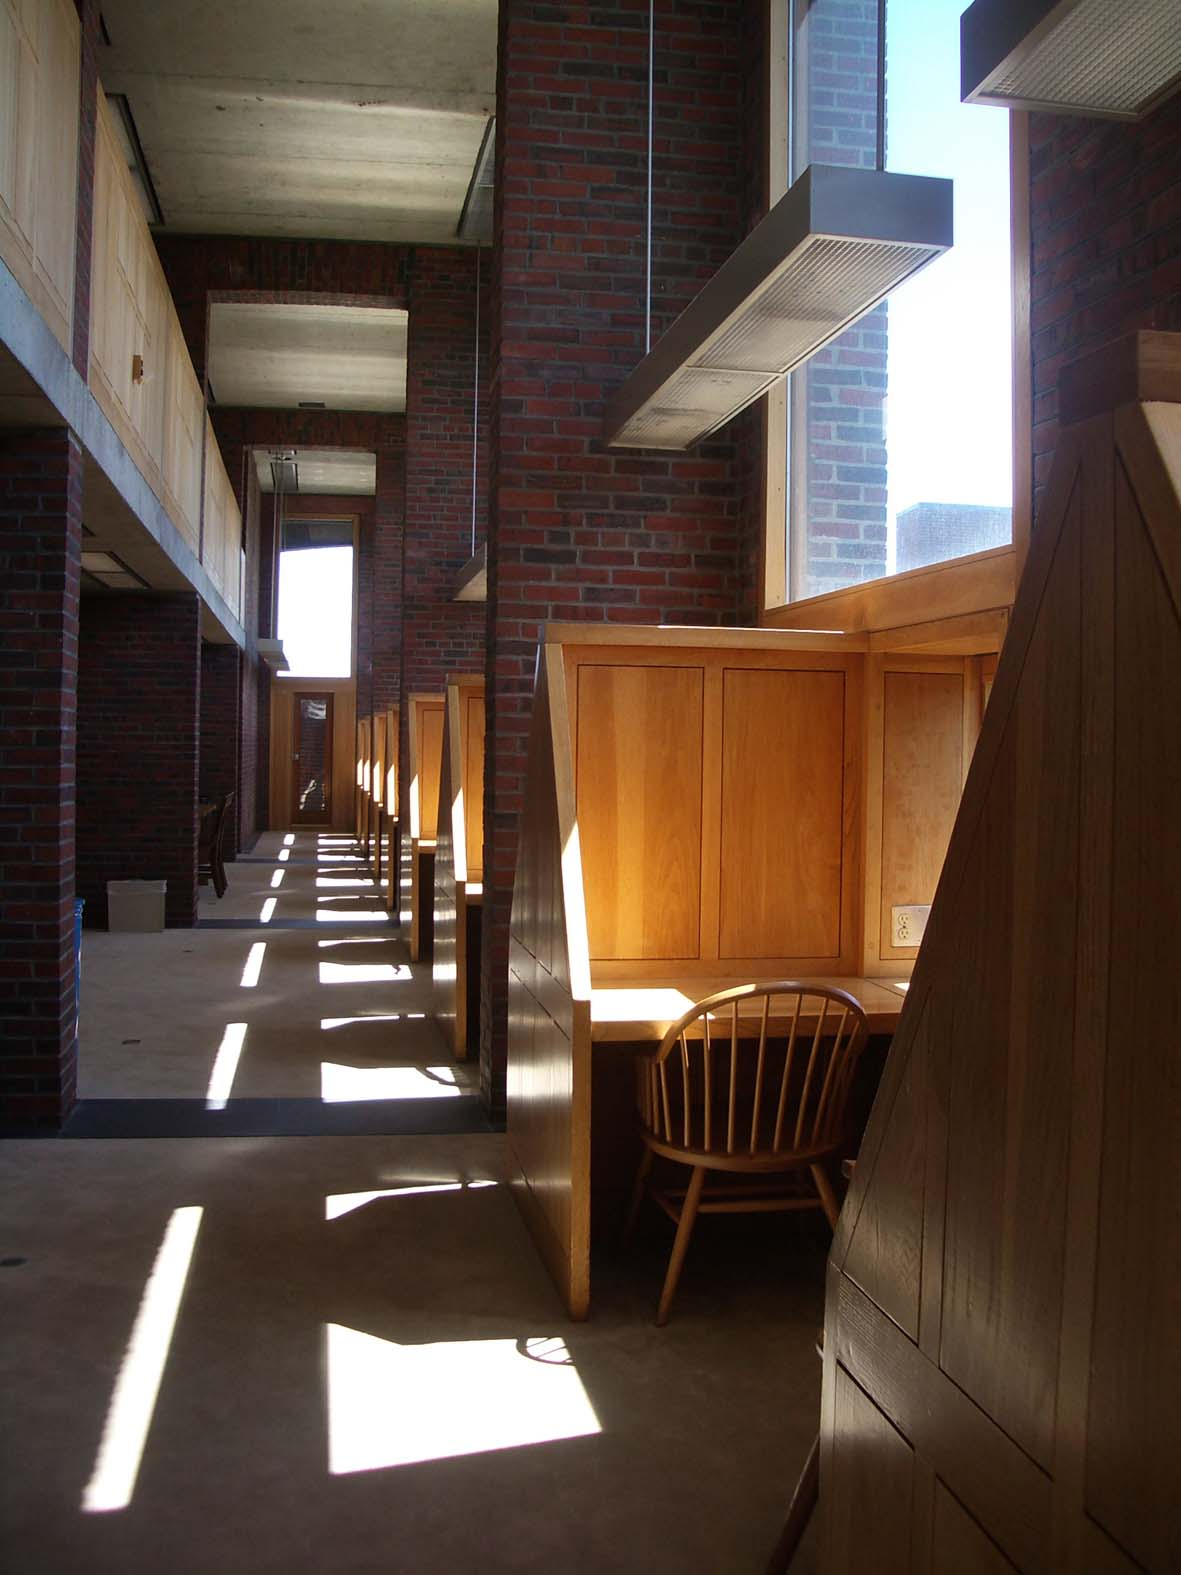 Phillips Exeter Academy Library - Data, Photos & Plans ...